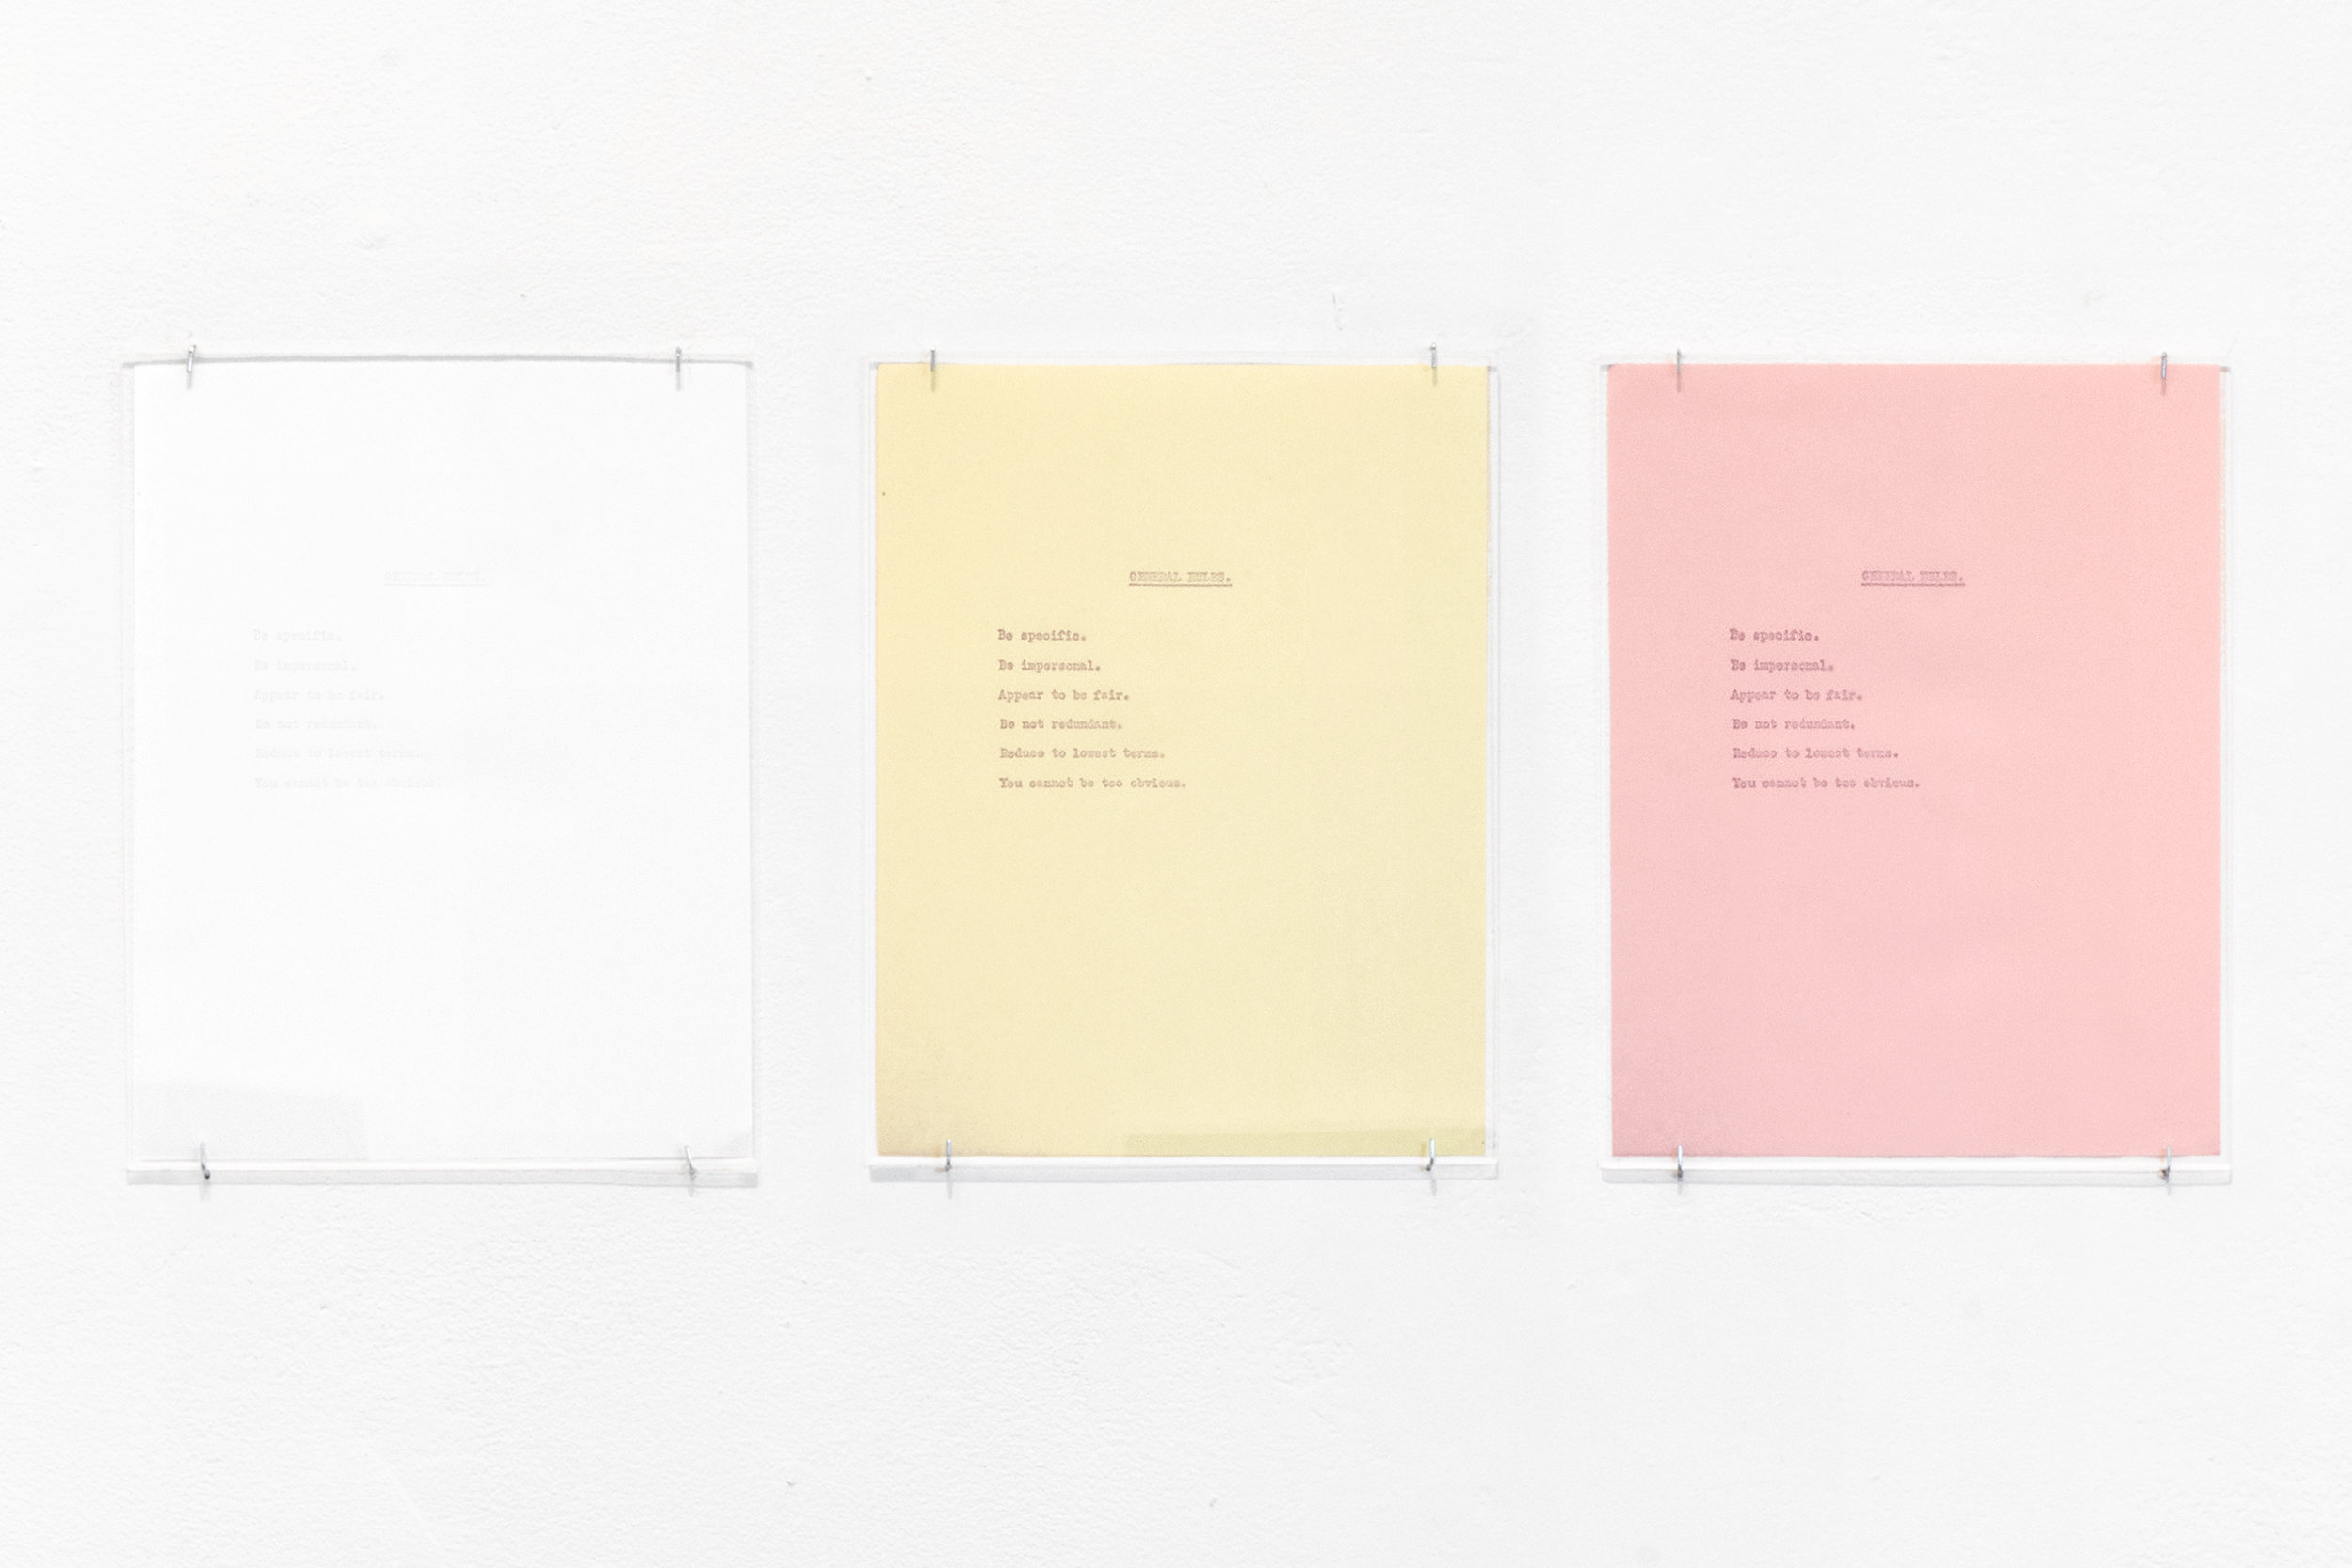 General Rules (1923)  2018 Blind debossment on 3-part carbonless paper Triptych of 11 x 8.5 in